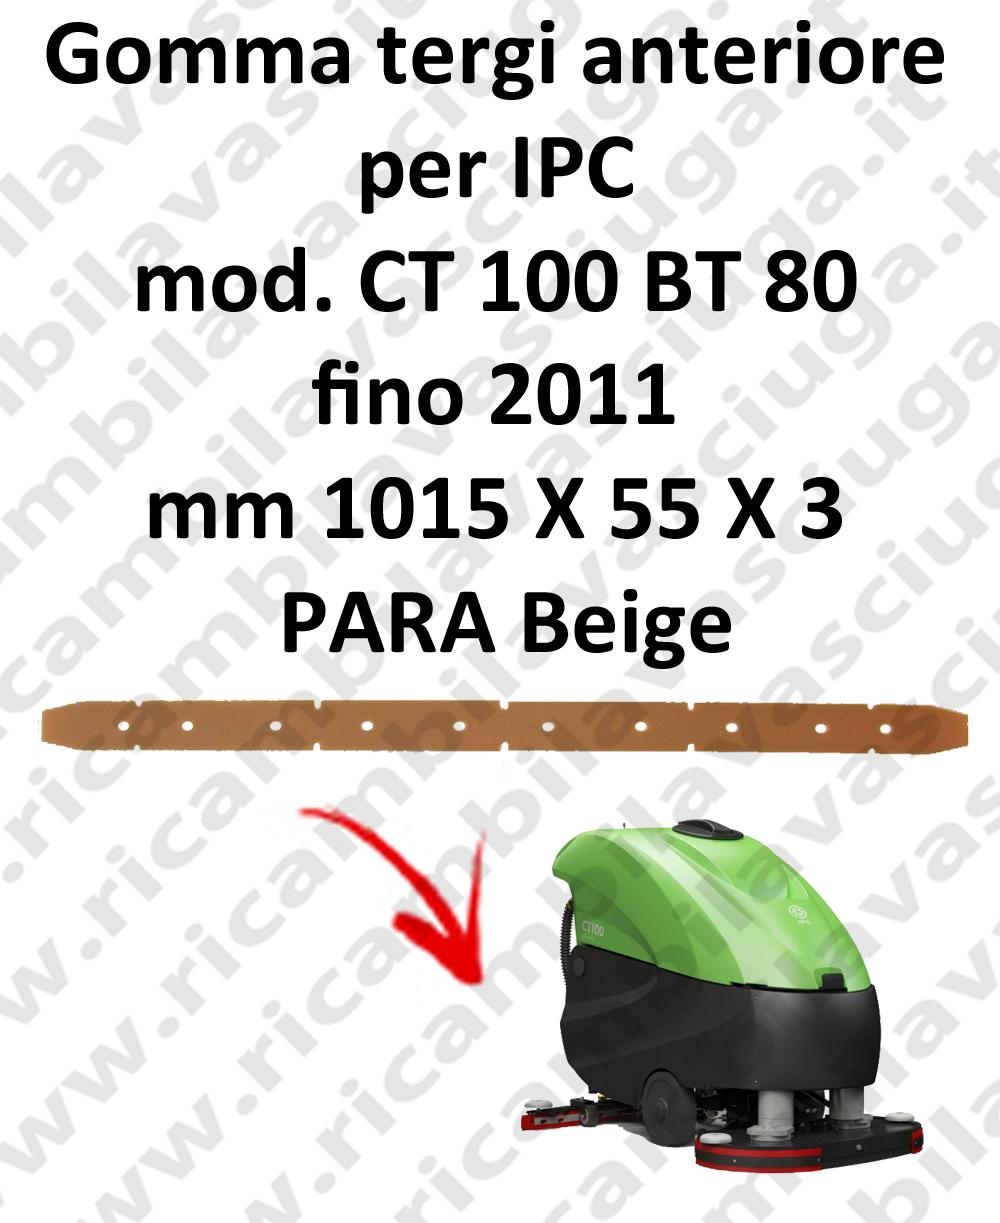 CT 100 BT 80 till 2011 Front Squeegee rubber for IPC